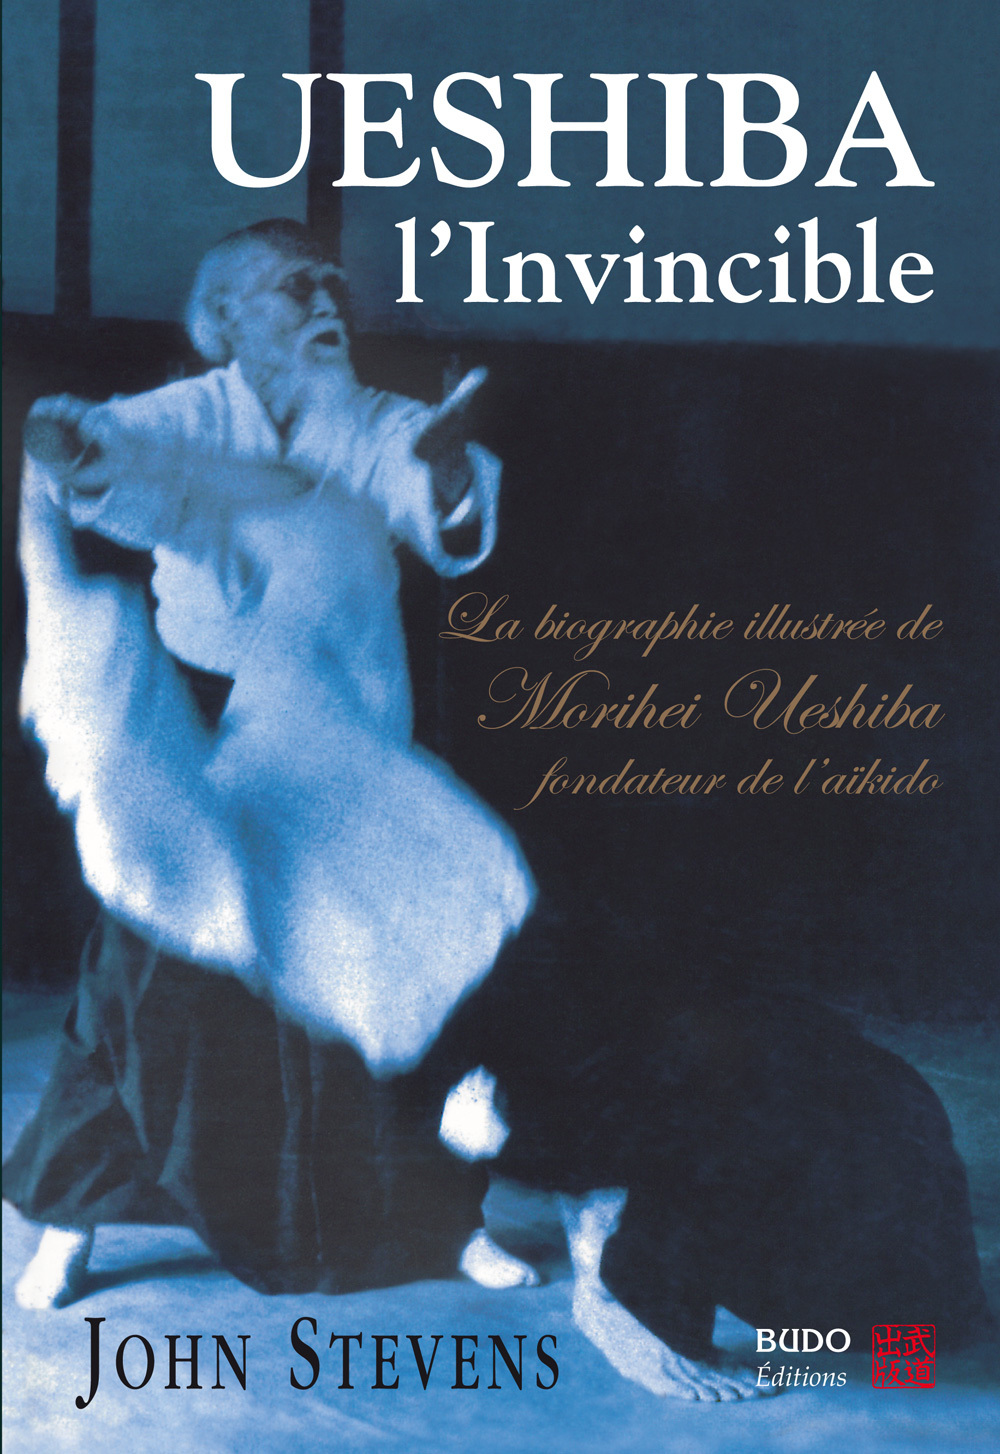 UESHIBA L'INVINCIBLE